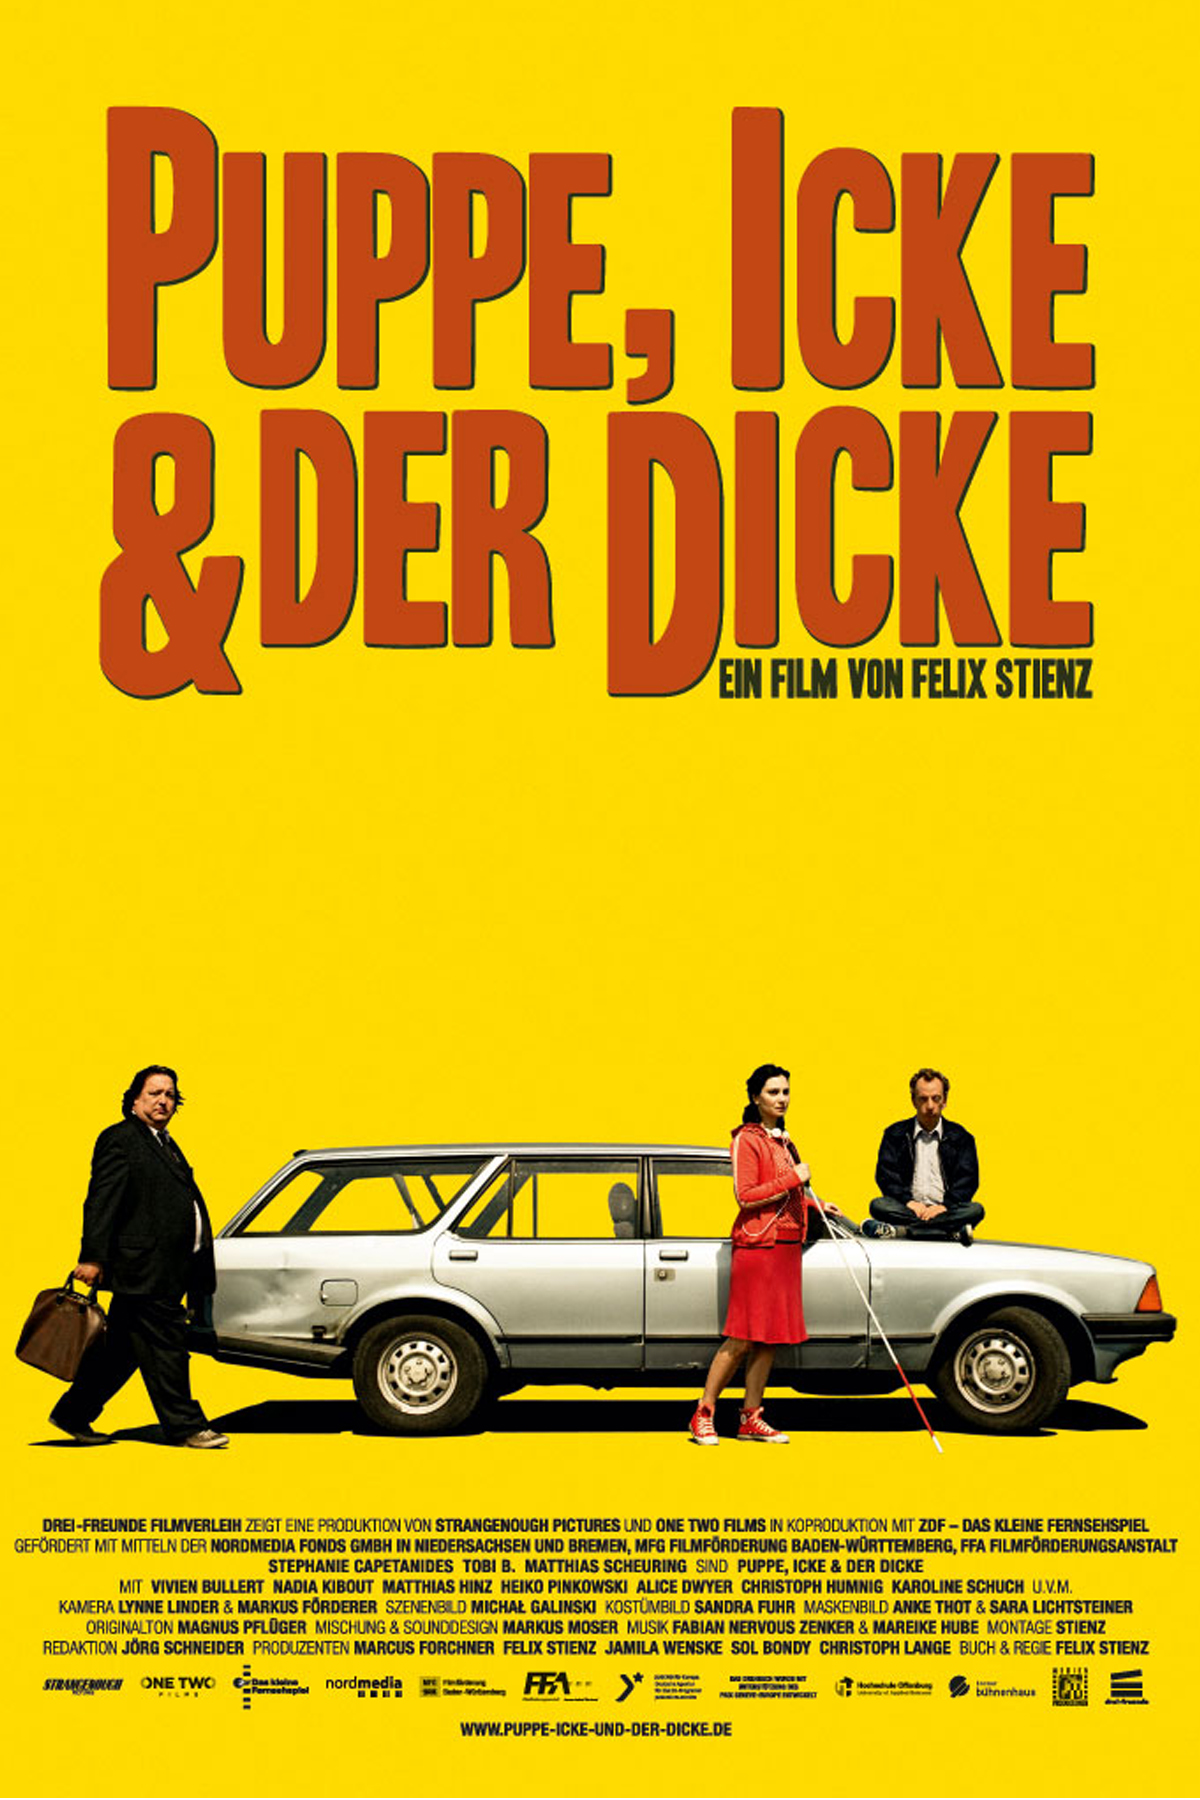 2012_PUPPE,_ICKE_DER_DICKE_One_Two_Films.jpg